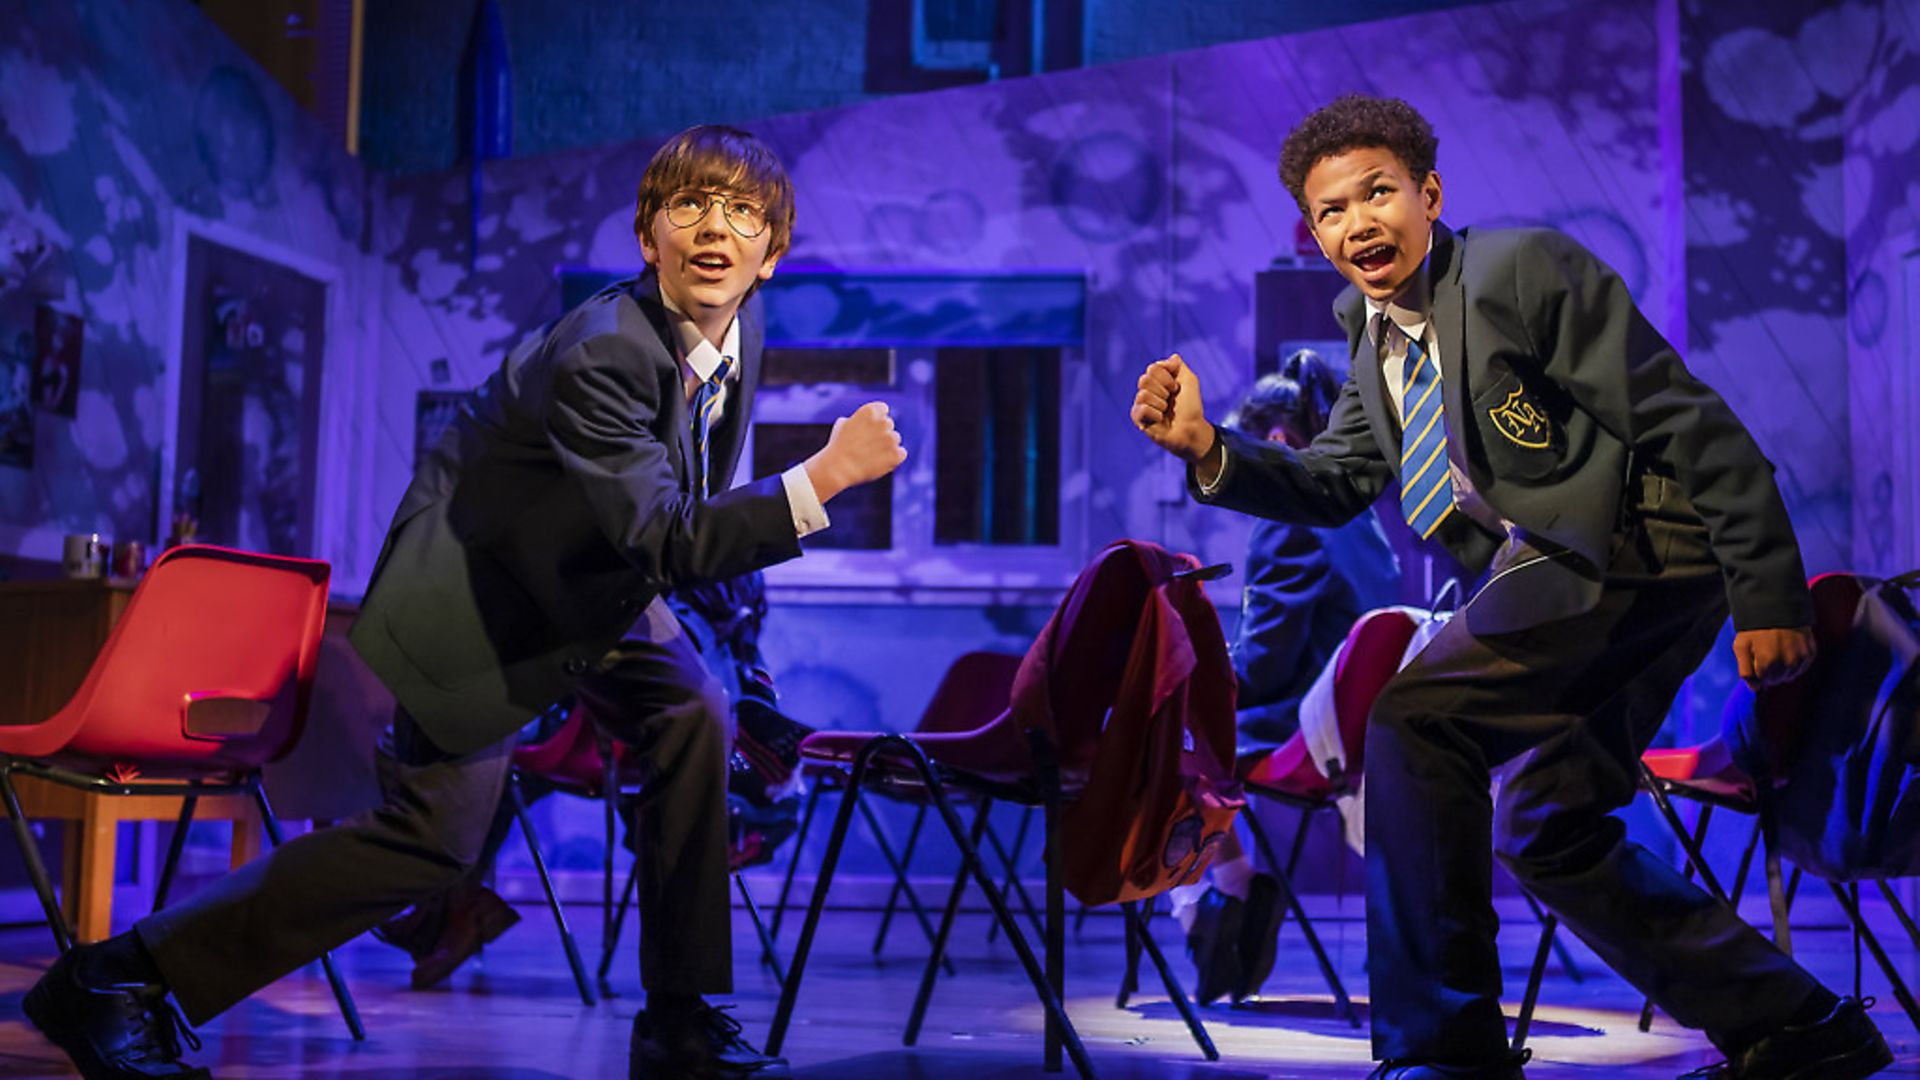 Top of the class: Michael hawkins as Adrian and Cuba Kamanu as Nigel in Adrian Mole the Musical, Aged 13 3/4 - Credit: Archant